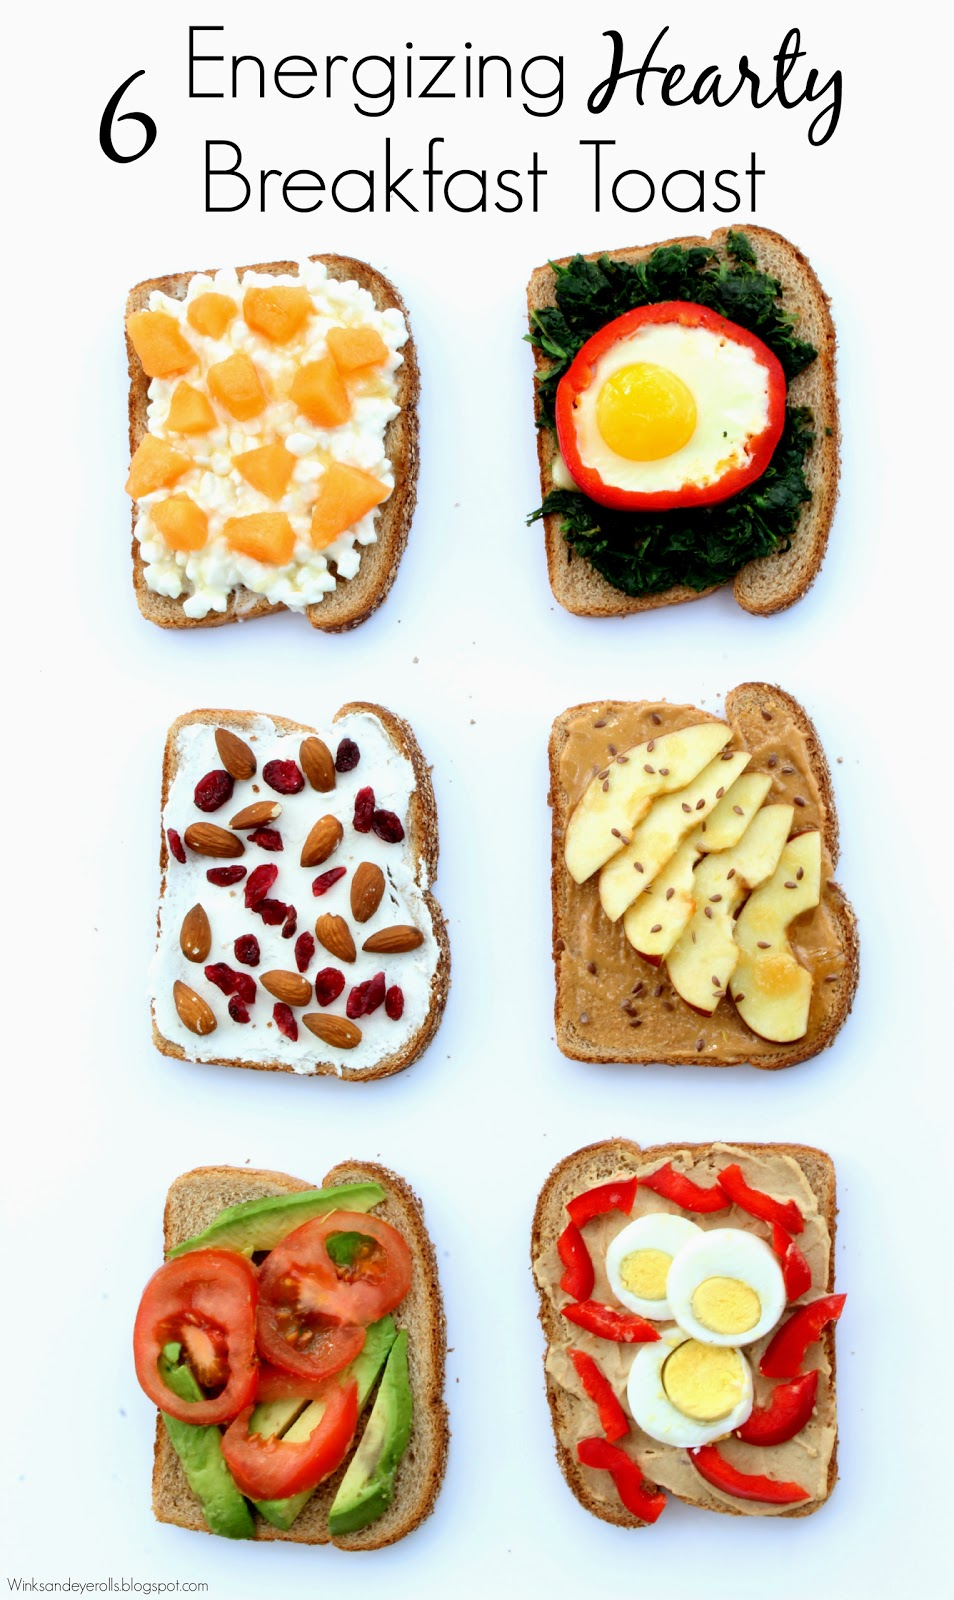 6 Energizing Hearty Breakfast Toast